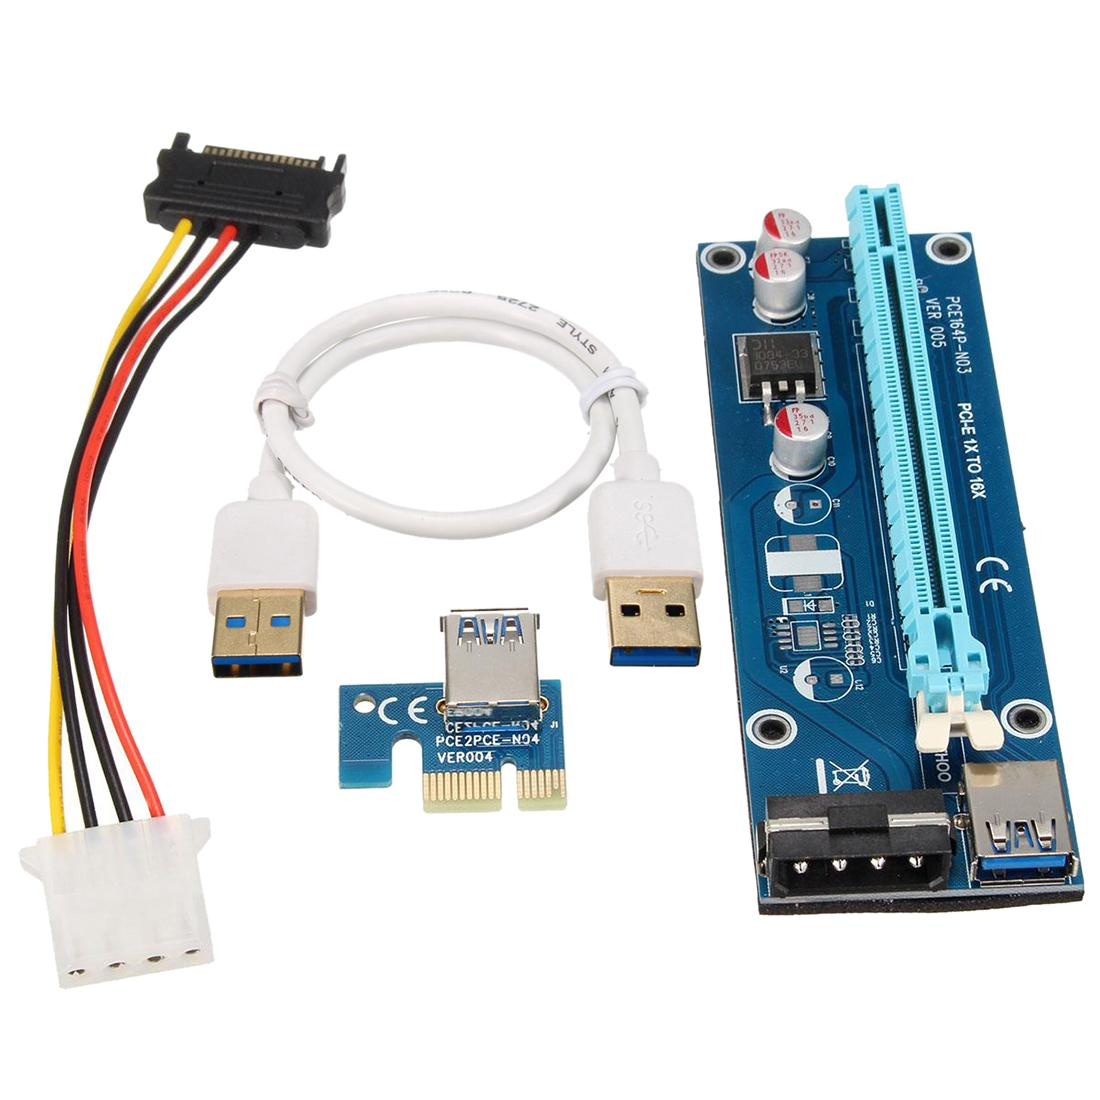 Freeshipping USB 3.0 PCI-E Express 1x to 16x Riser Board Extender Card Adapter with SATA Cable